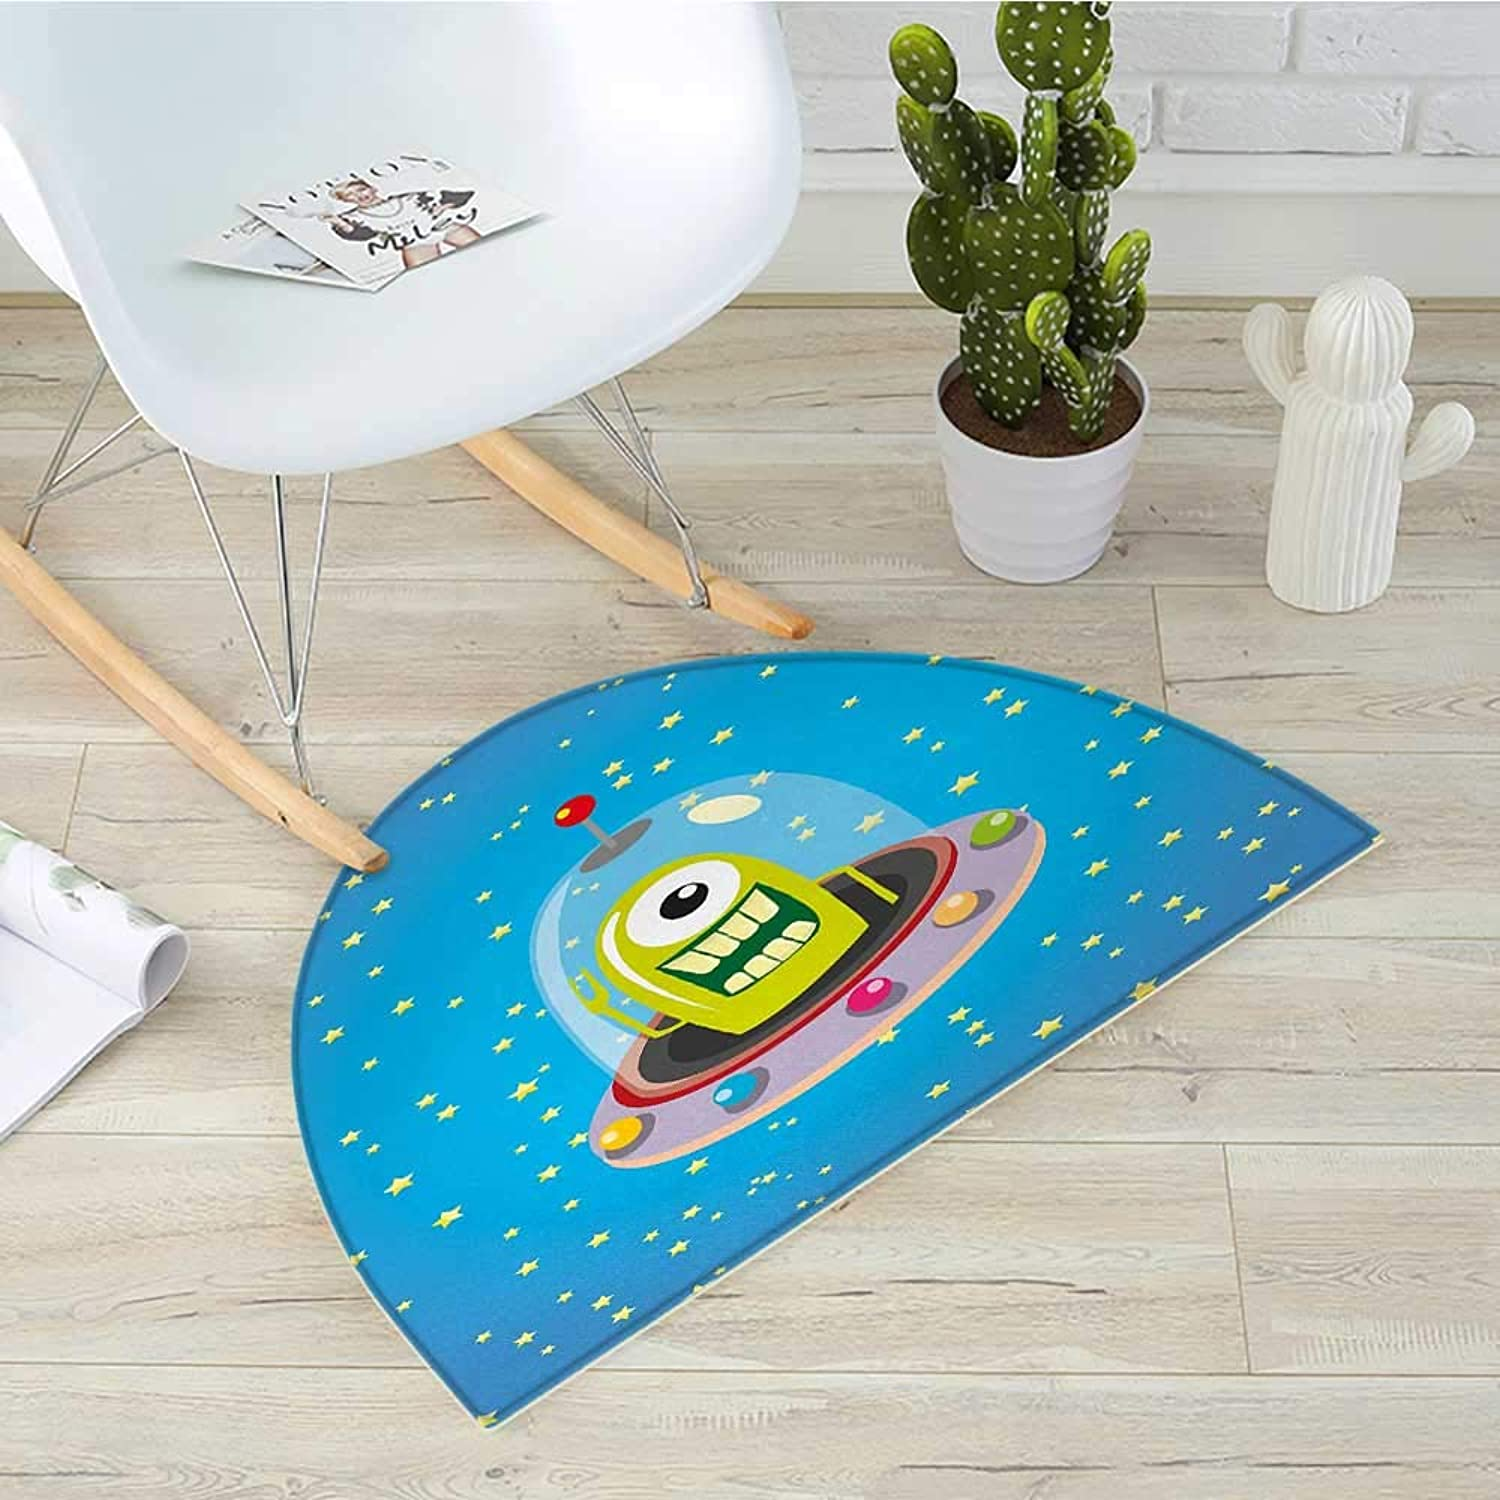 Kids Half Round Door mats Cute Comic UFO Alien in Outer Space with Stars Galaxy Journey Caricature Cartoon Print Bathroom Mat H 39.3  xD 59  Multicolor